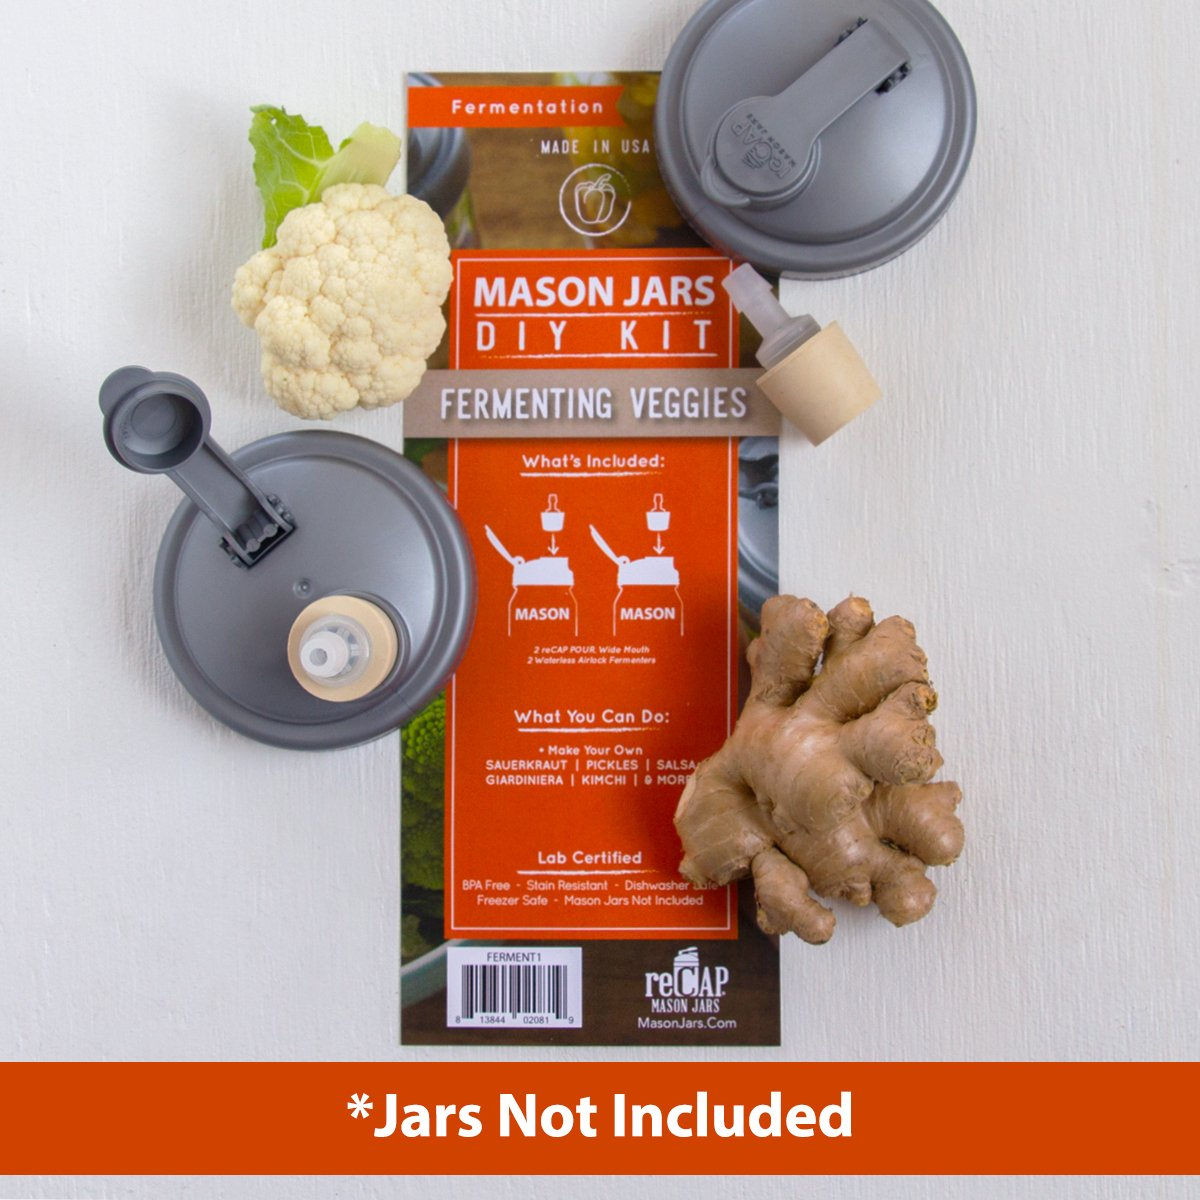 reCAP Mason Jars DIY Kit for Fermenting, Wide Mouth - BPA-Free, American Made Ball Mason Jar Fermenting Lids, Includes 2 POUR lids and 2 Fermenters, Spill Proof and Made with Safe, No-Break Materials